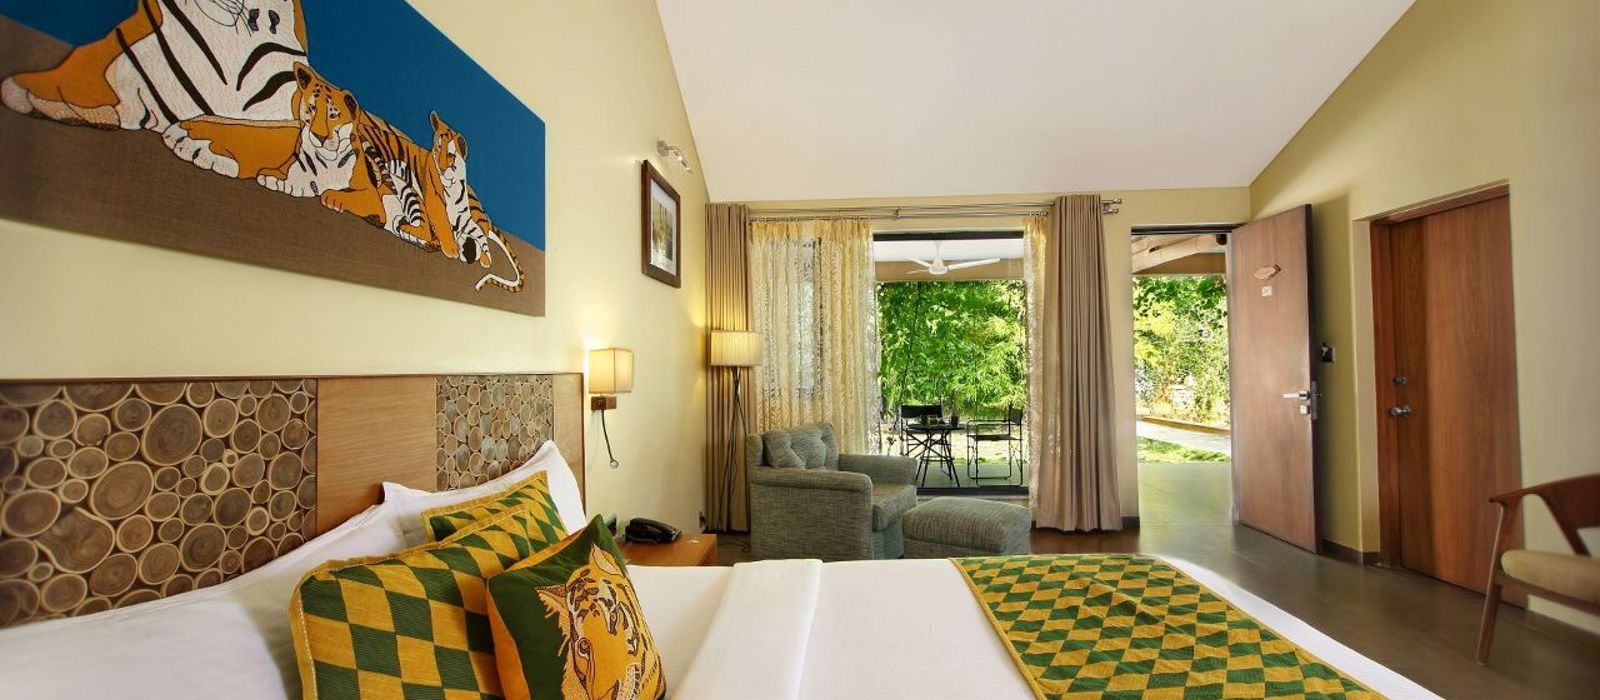 Hotel Svasvara Resort Central & West India